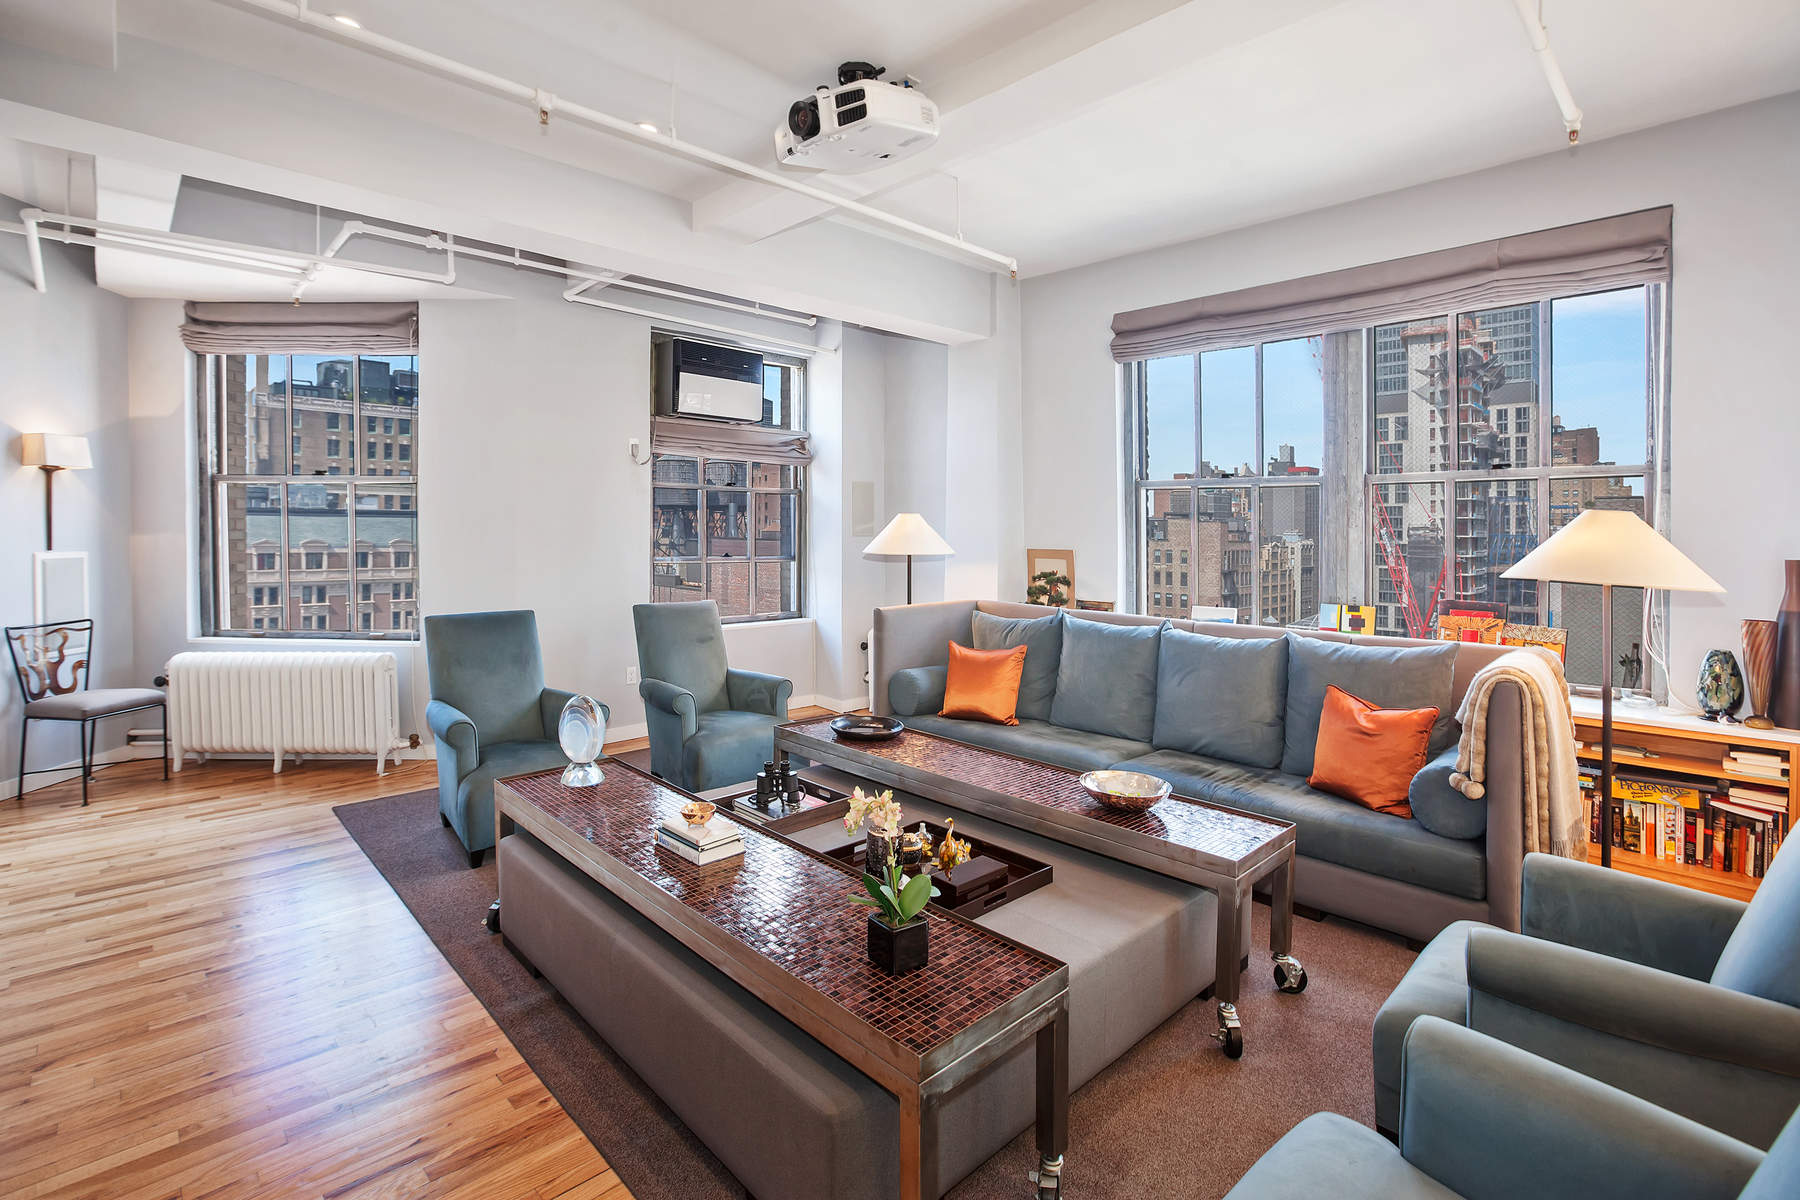 Co-op for Sale at HIGH FLOOR LIVE/WORK NOMAD LOFT 11 West 30th Street 14th Floor, Gramercy Park, New York, New York, 10016 United States